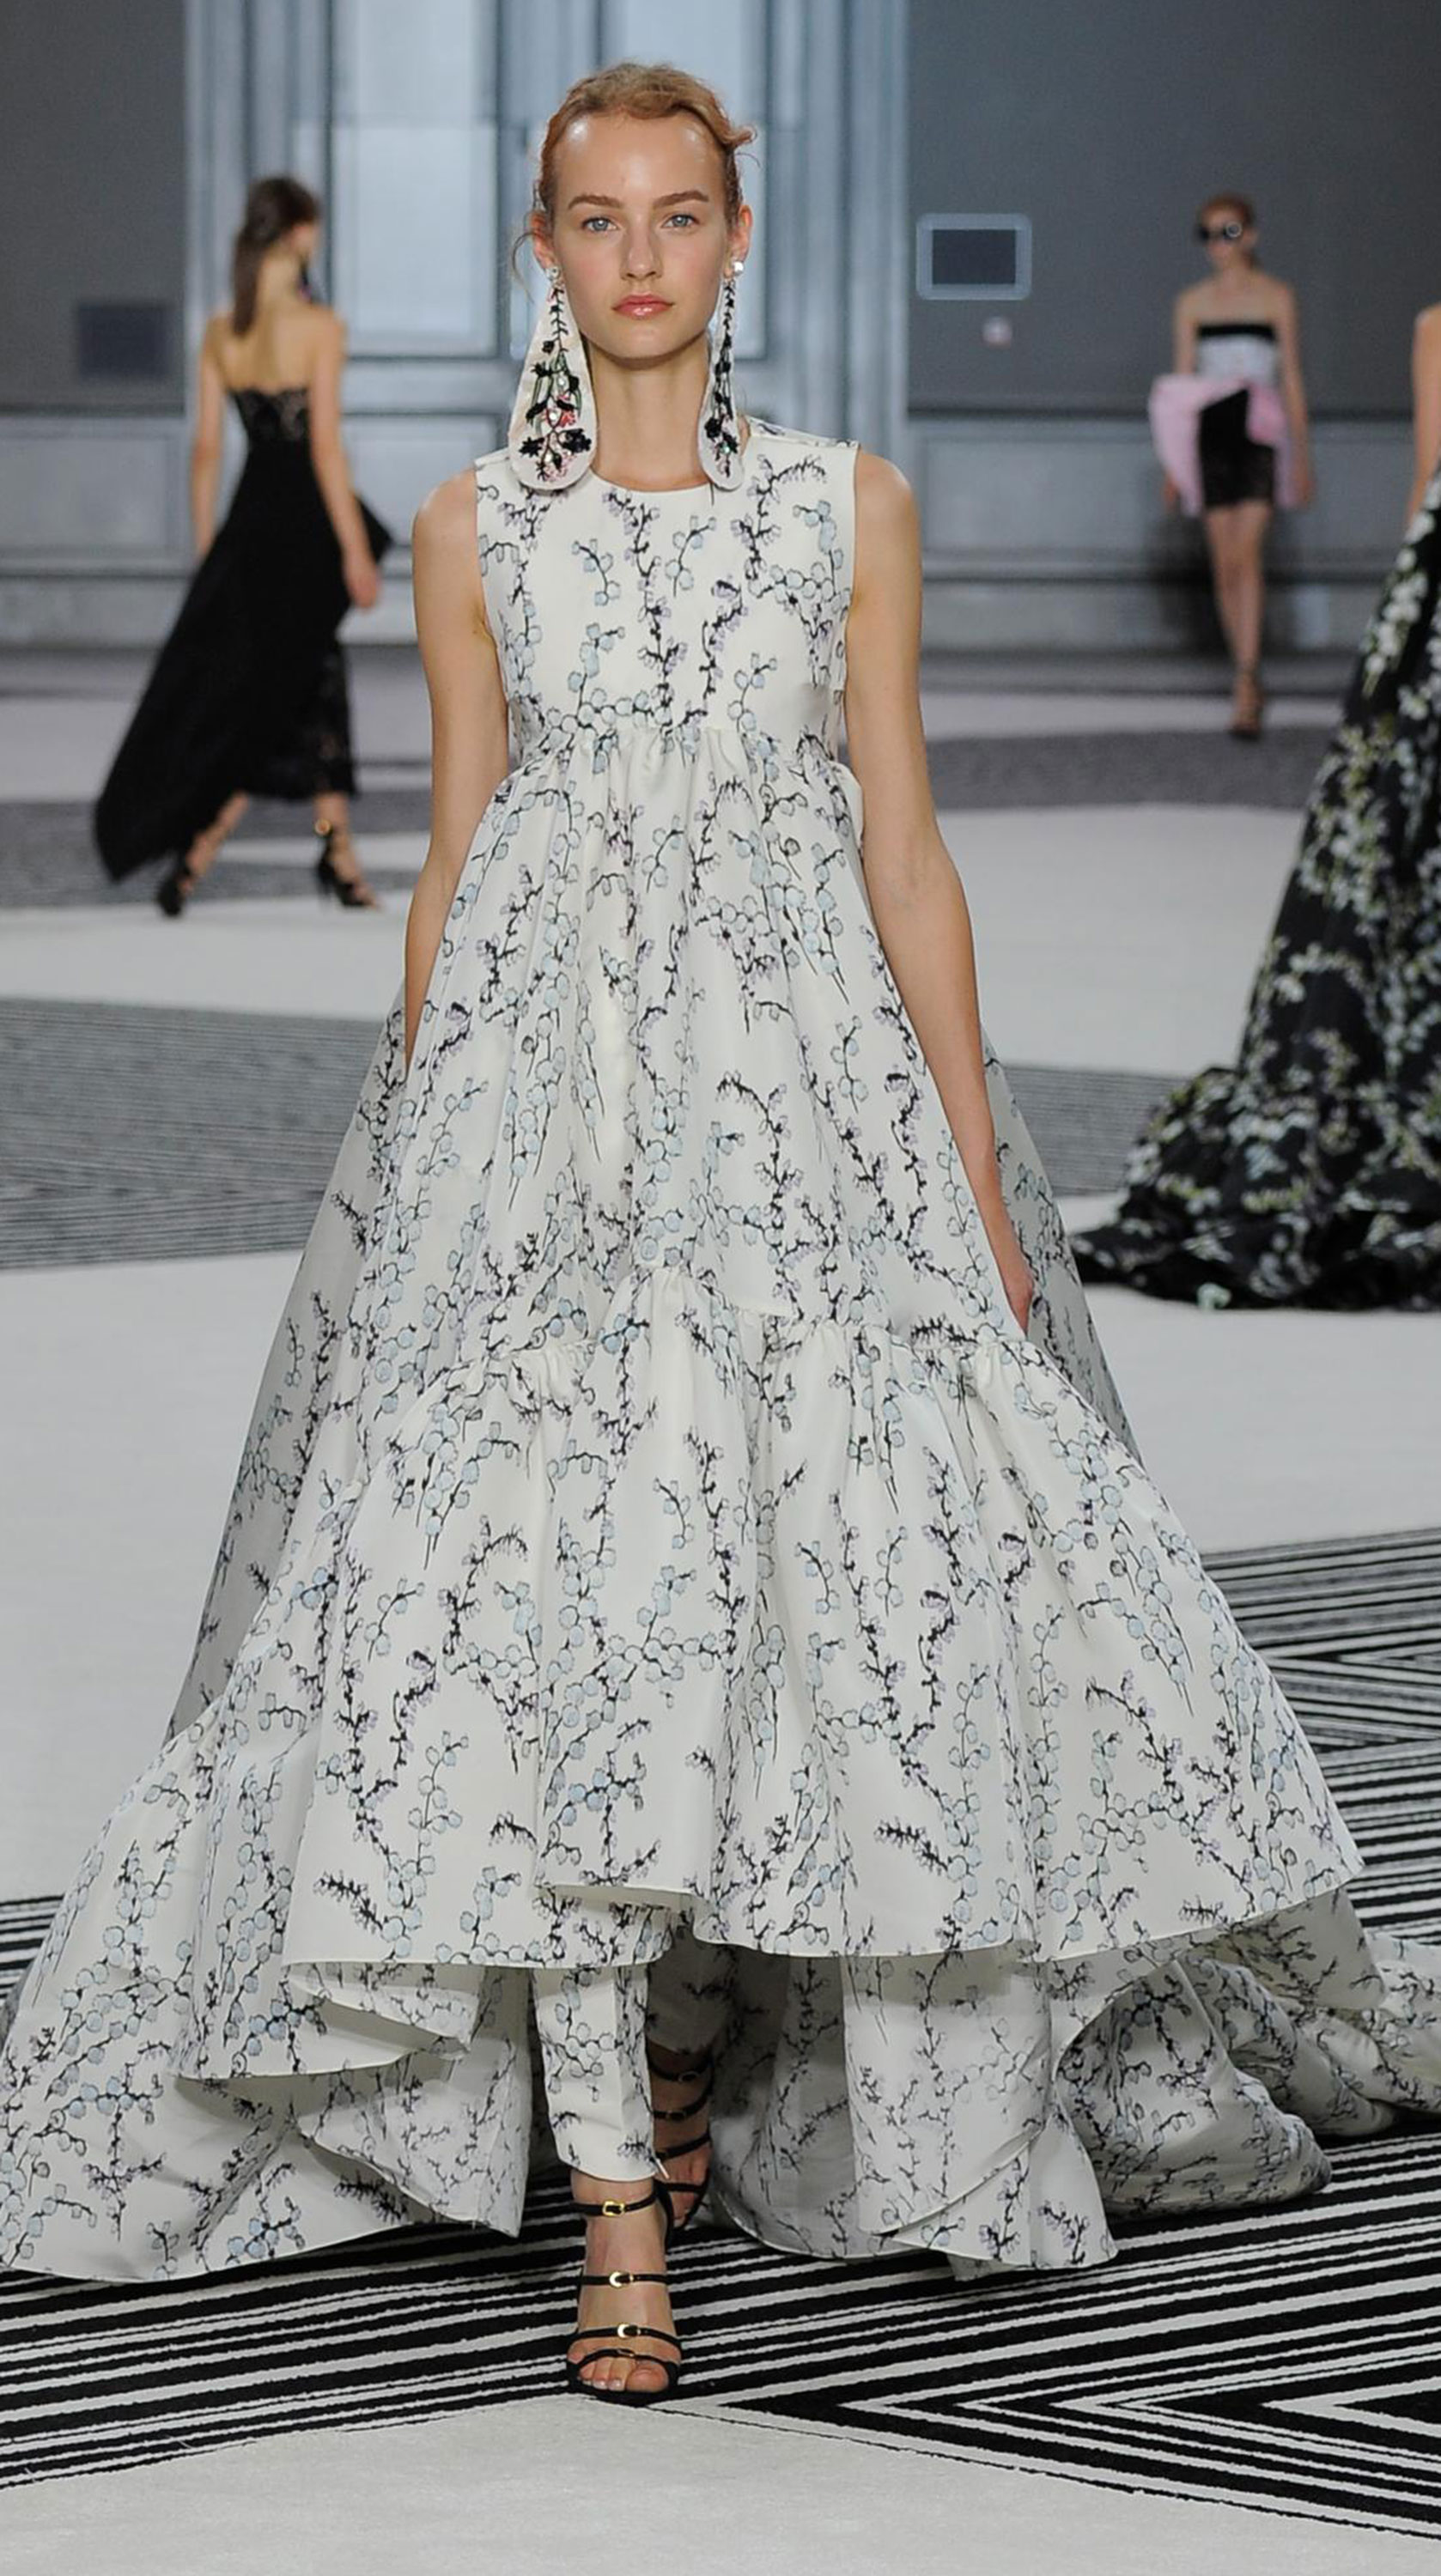 "<p>With <a href=""http://honey.ninemsn.com.au/2015/07/09/12/33/karl-lagerfeld-talks-chanel-fall-2015-couture-runway-show"" target=""_blank"">a single gown consisting of up to a million pearls</a>, the haute couture runways are home to some pretty spectacular creations and offer an abundance of bridal inspiration. From beautiful suiting to steal-the-show princess gowns, there's a little something for every bride-to-be.   </p>"